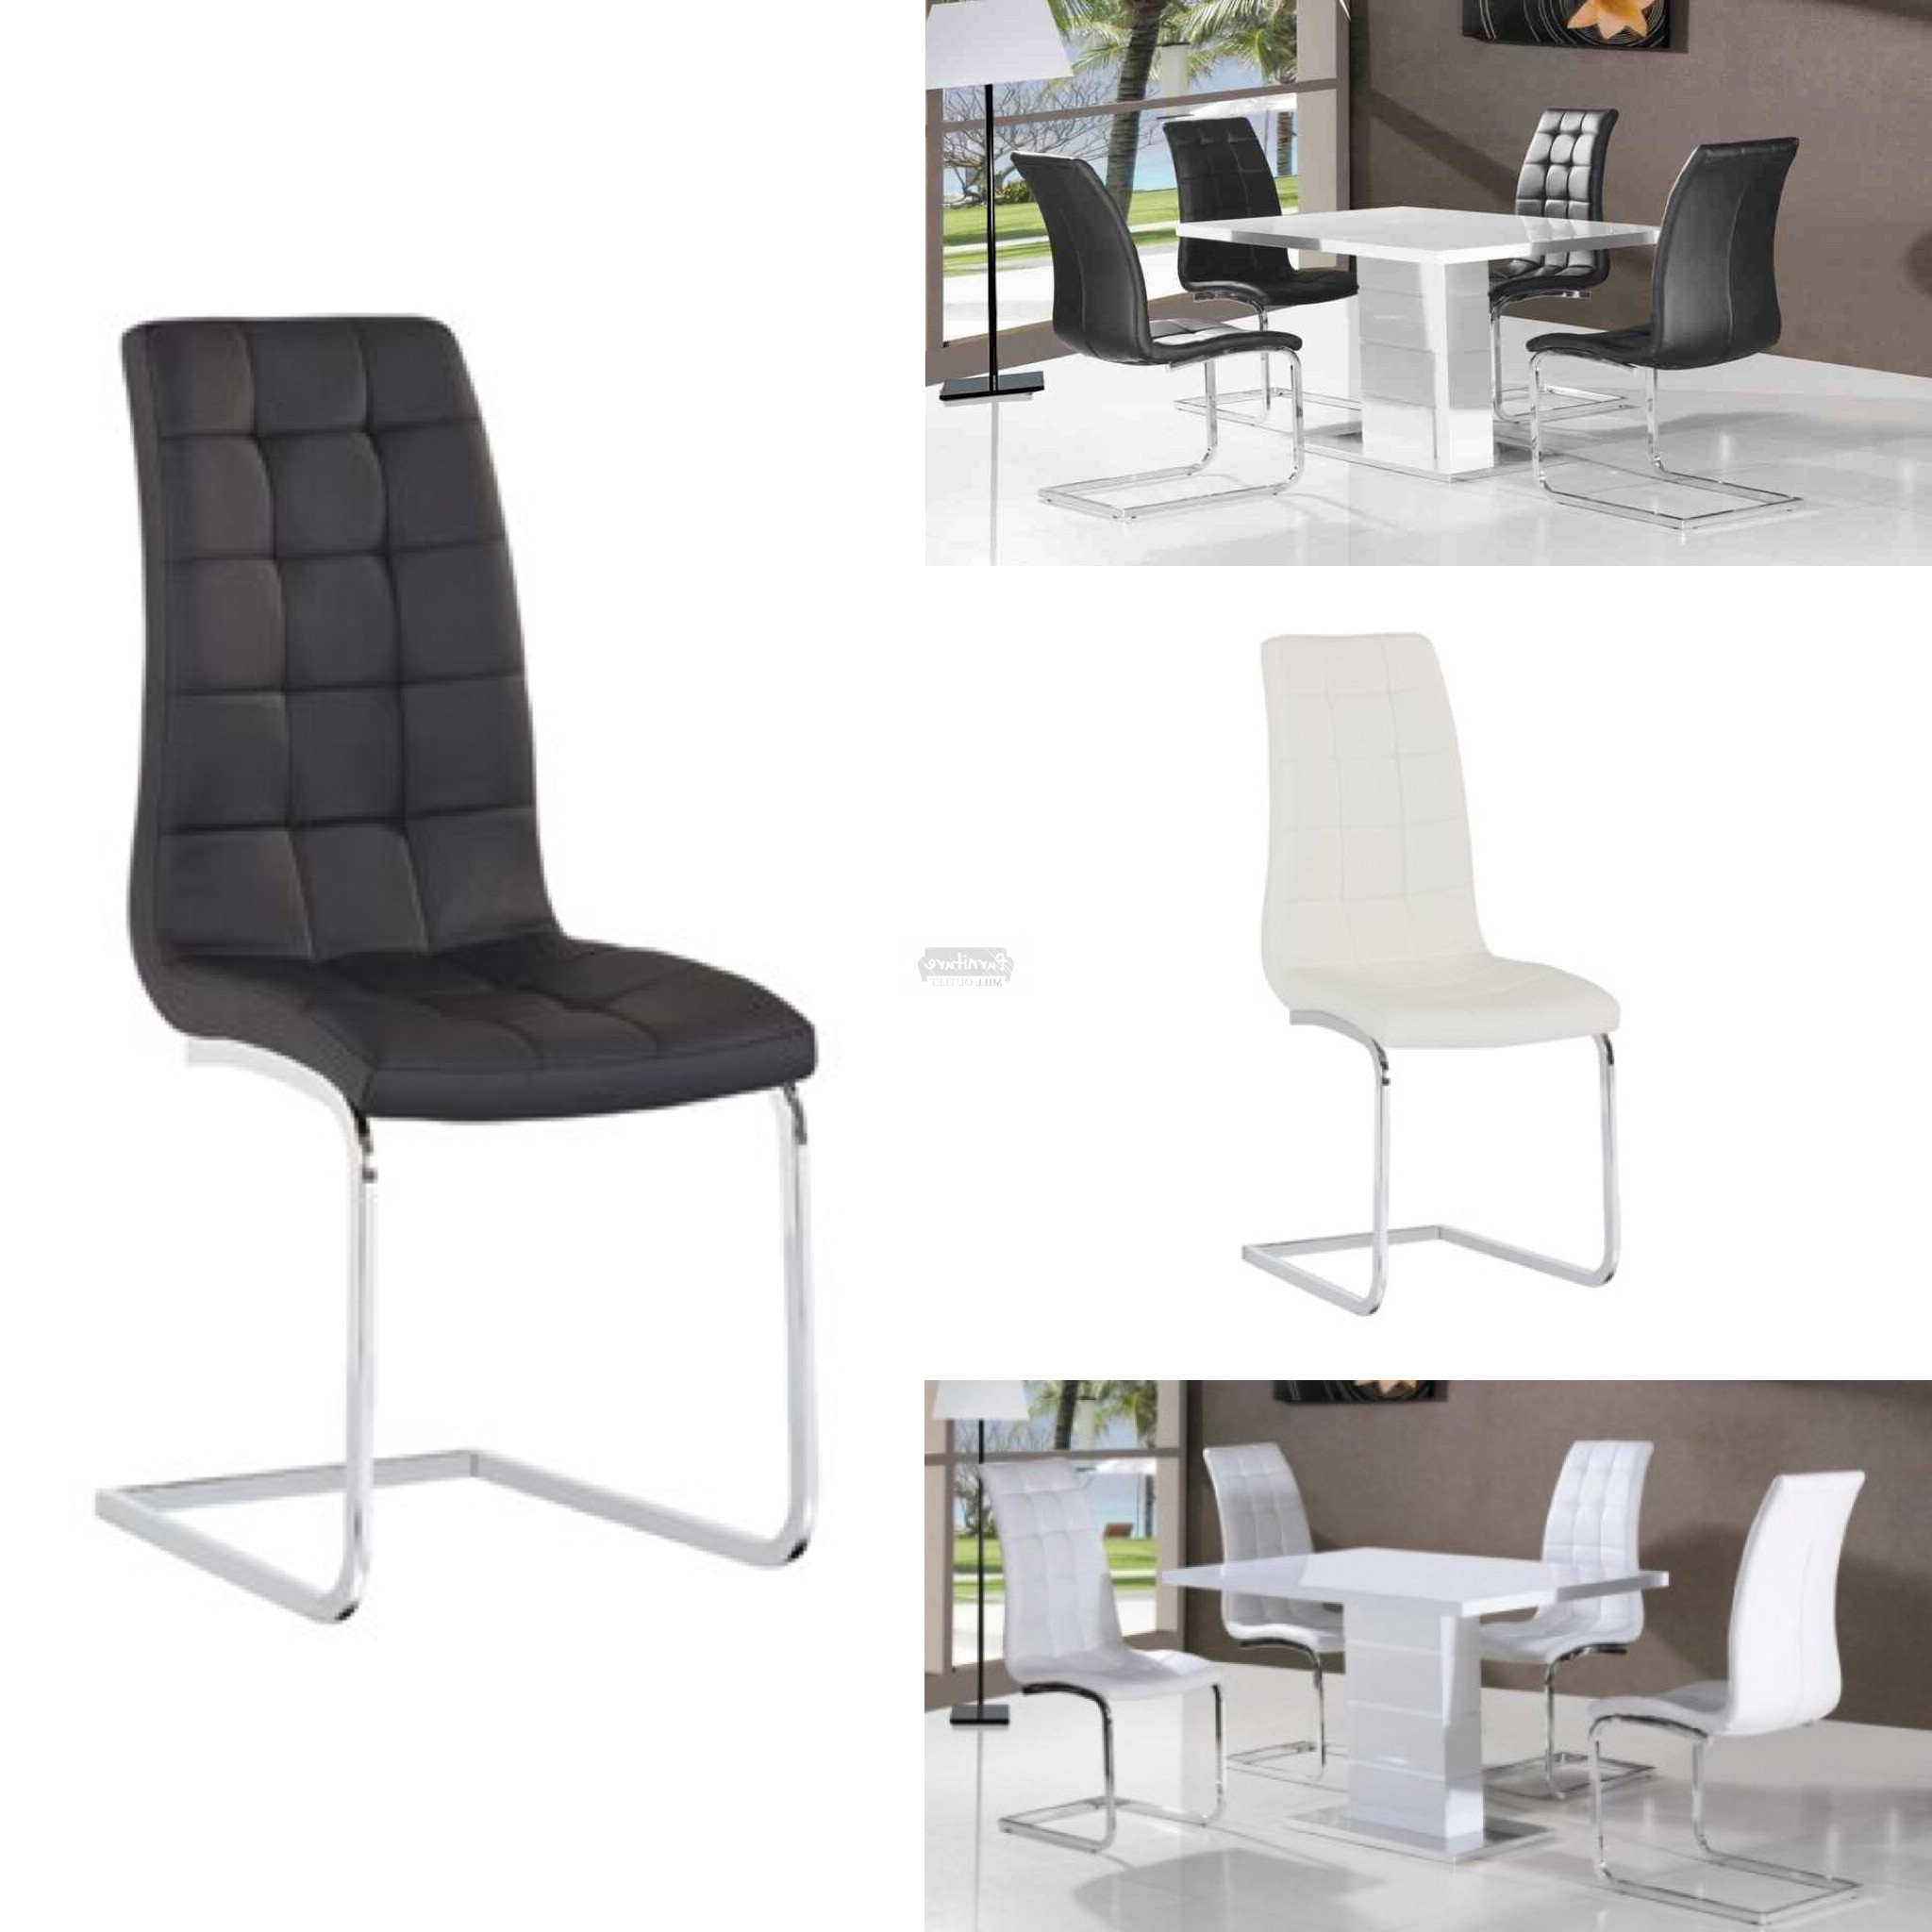 Favorite High Gloss Dining Tables Sets In Ice White Gloss Dining Table & 4 X Leather Chair Set – Furniture (View 17 of 25)